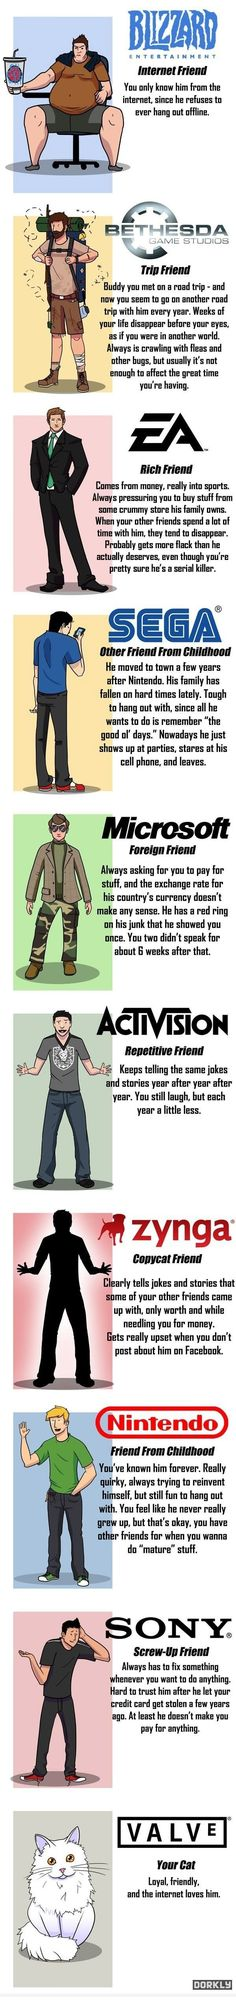 Scarily accurate! Gamer friends